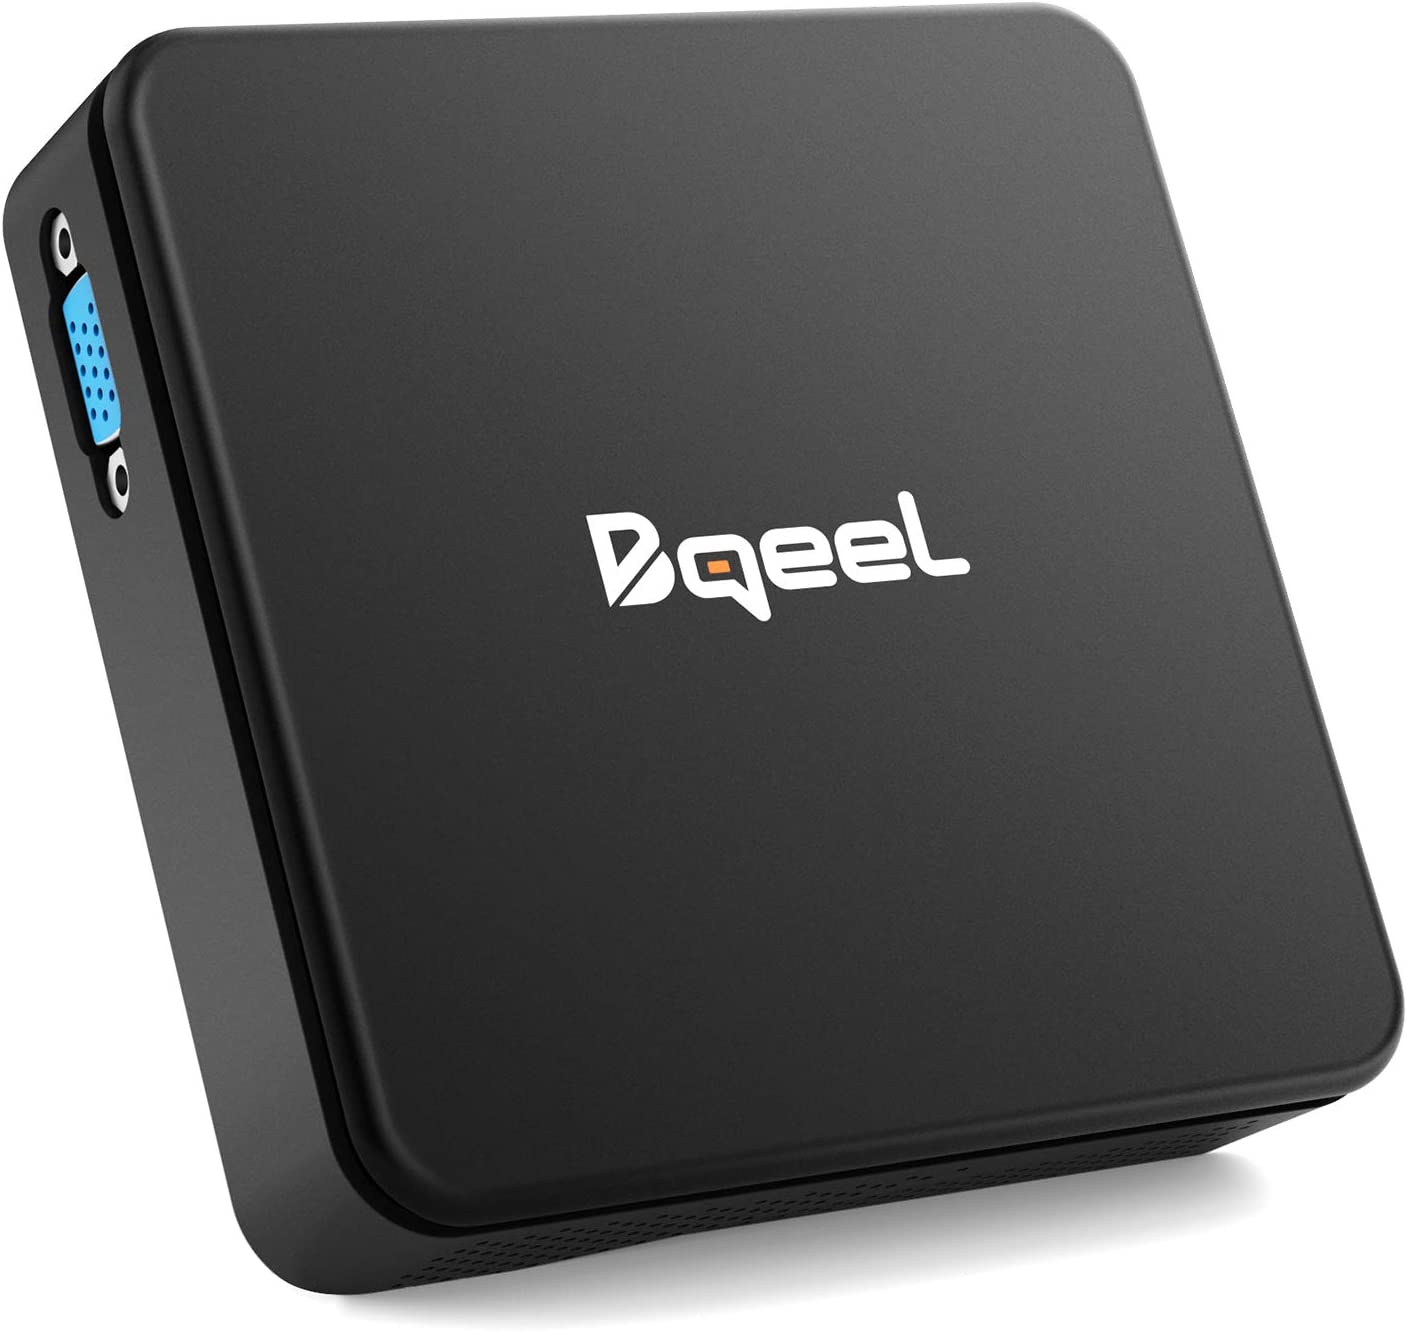 Bqeel Mini PC 【4GB+64GB】 Procesador Intel® Cherry Trail Z8350 soporta Windows 10 Home Dual WiFi 5G/2.4G,Gráfico Intel HD 4K,BT 4.0,Gigabit Ethernet,Salida/USB/SD/VGA Ordenador de Sobremesa